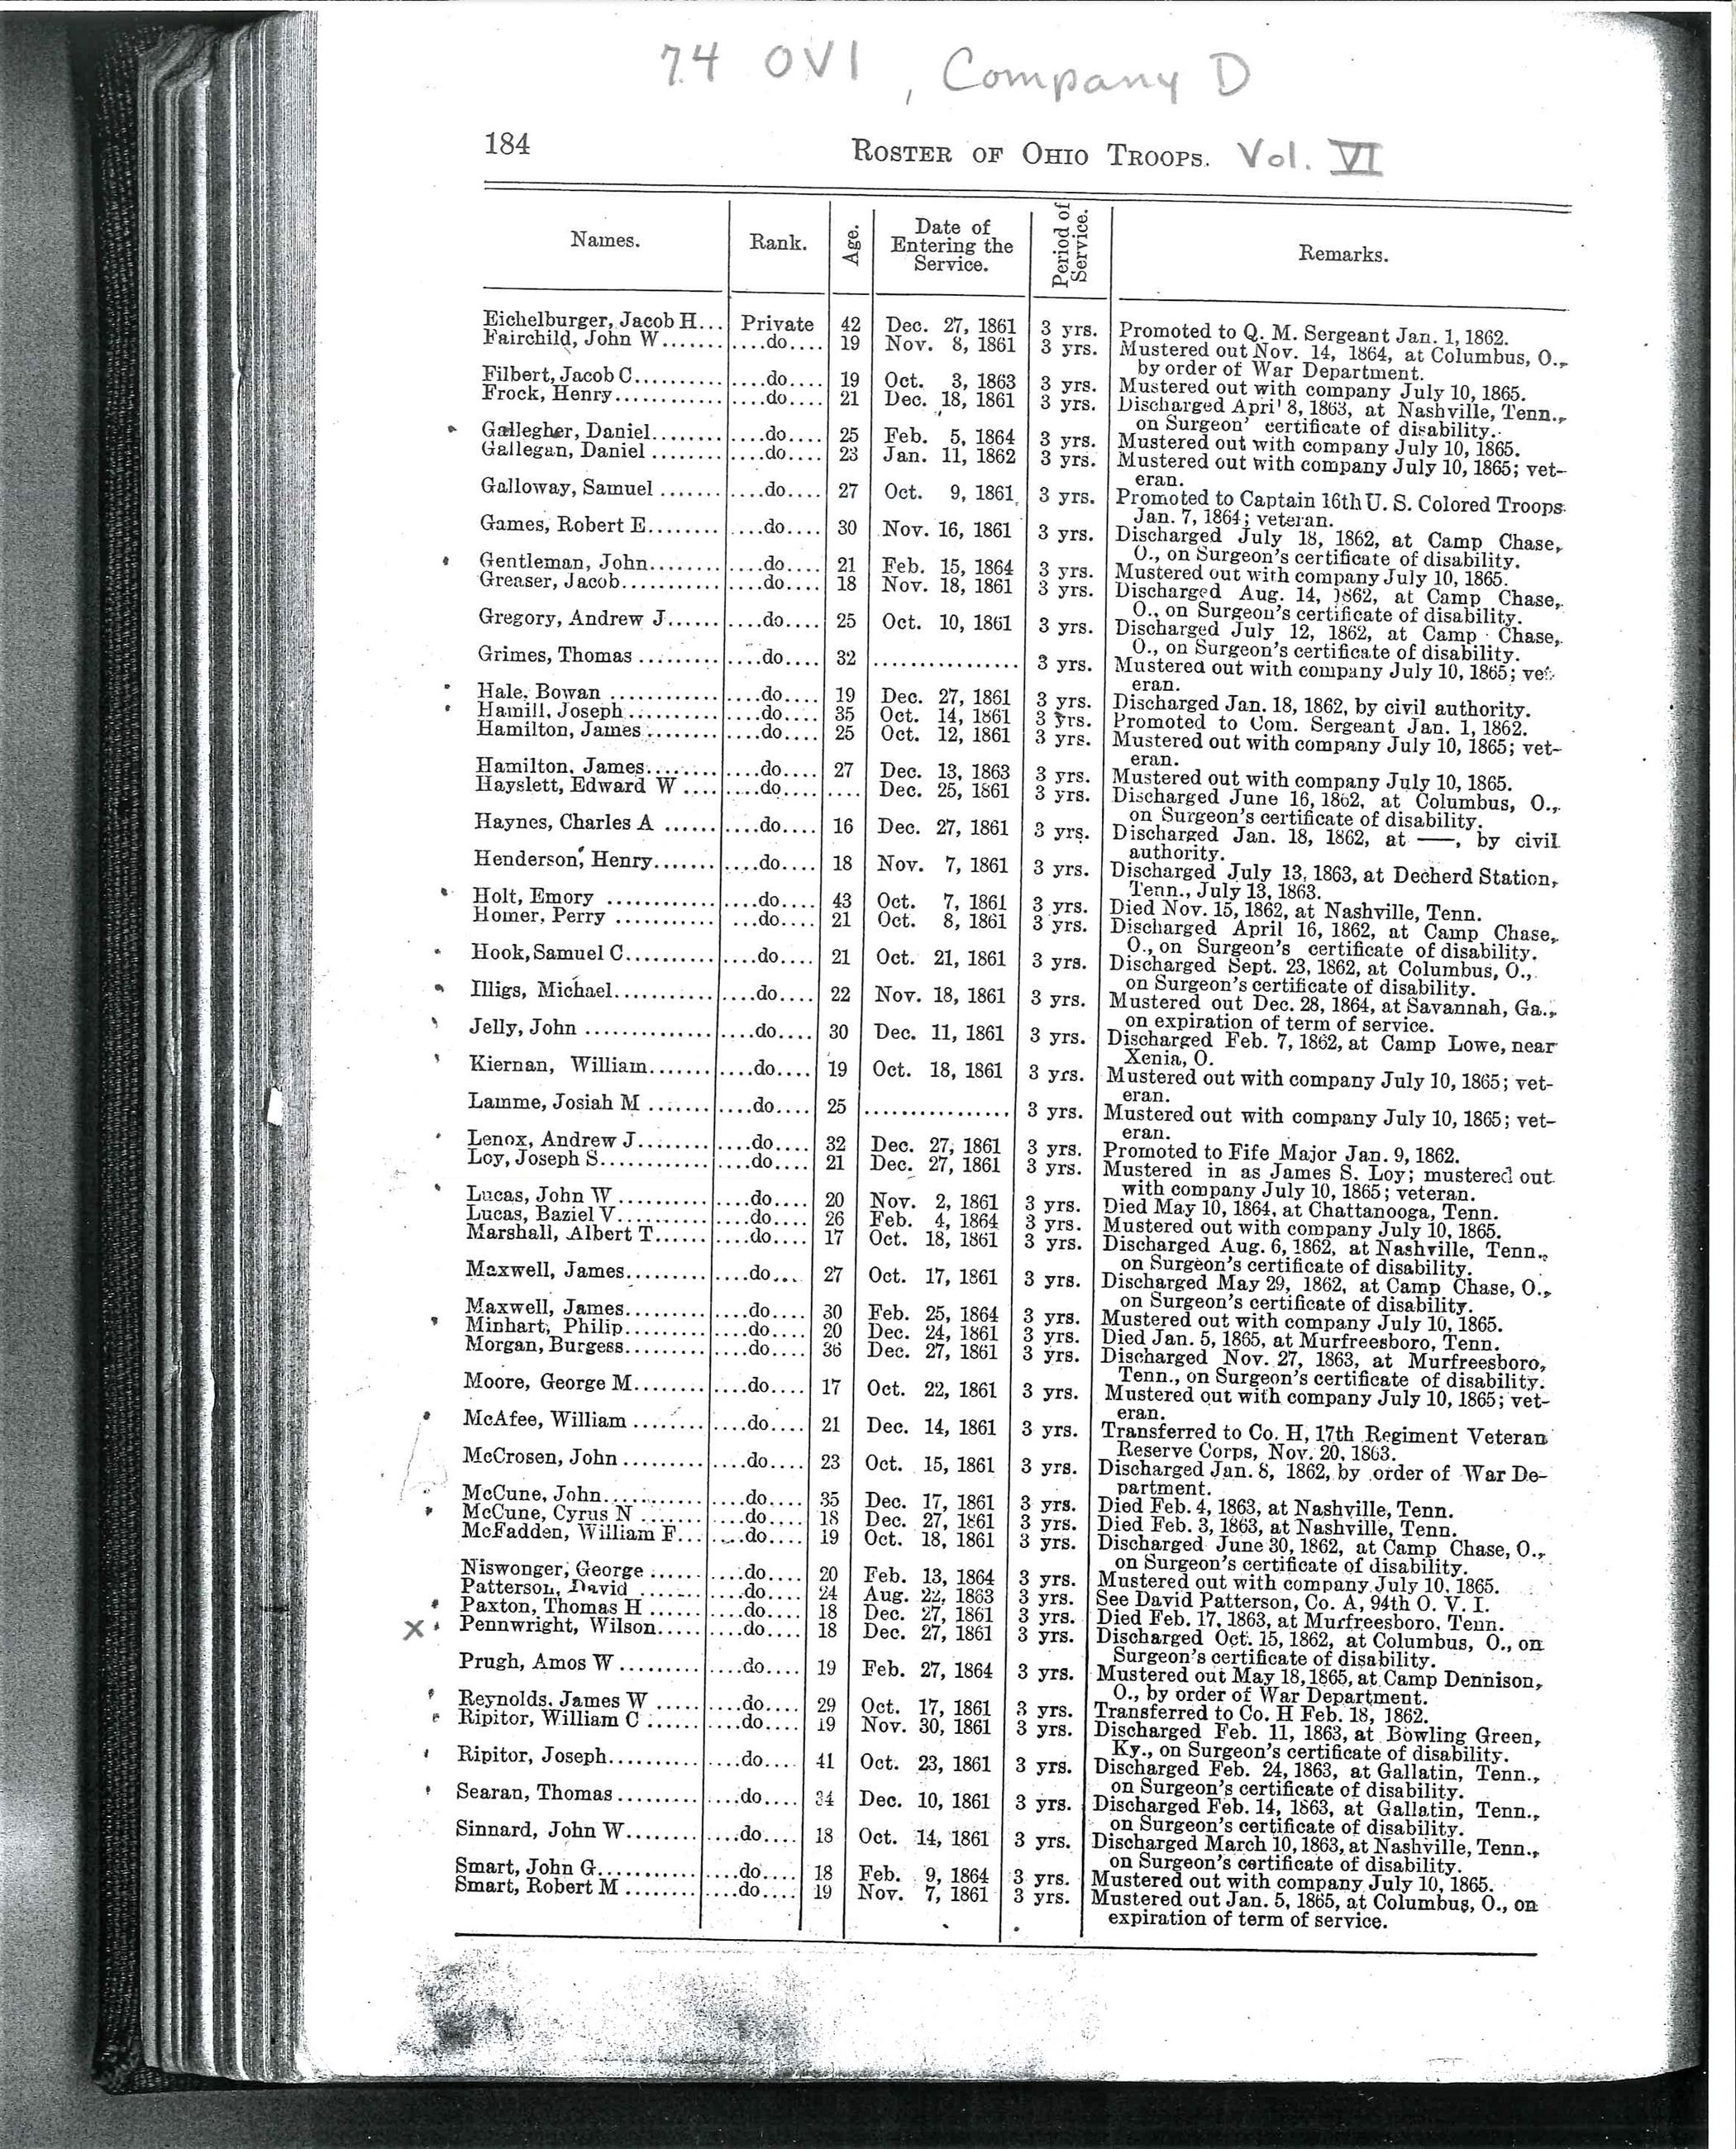 Roster of Ohio Troops Vol VI p184